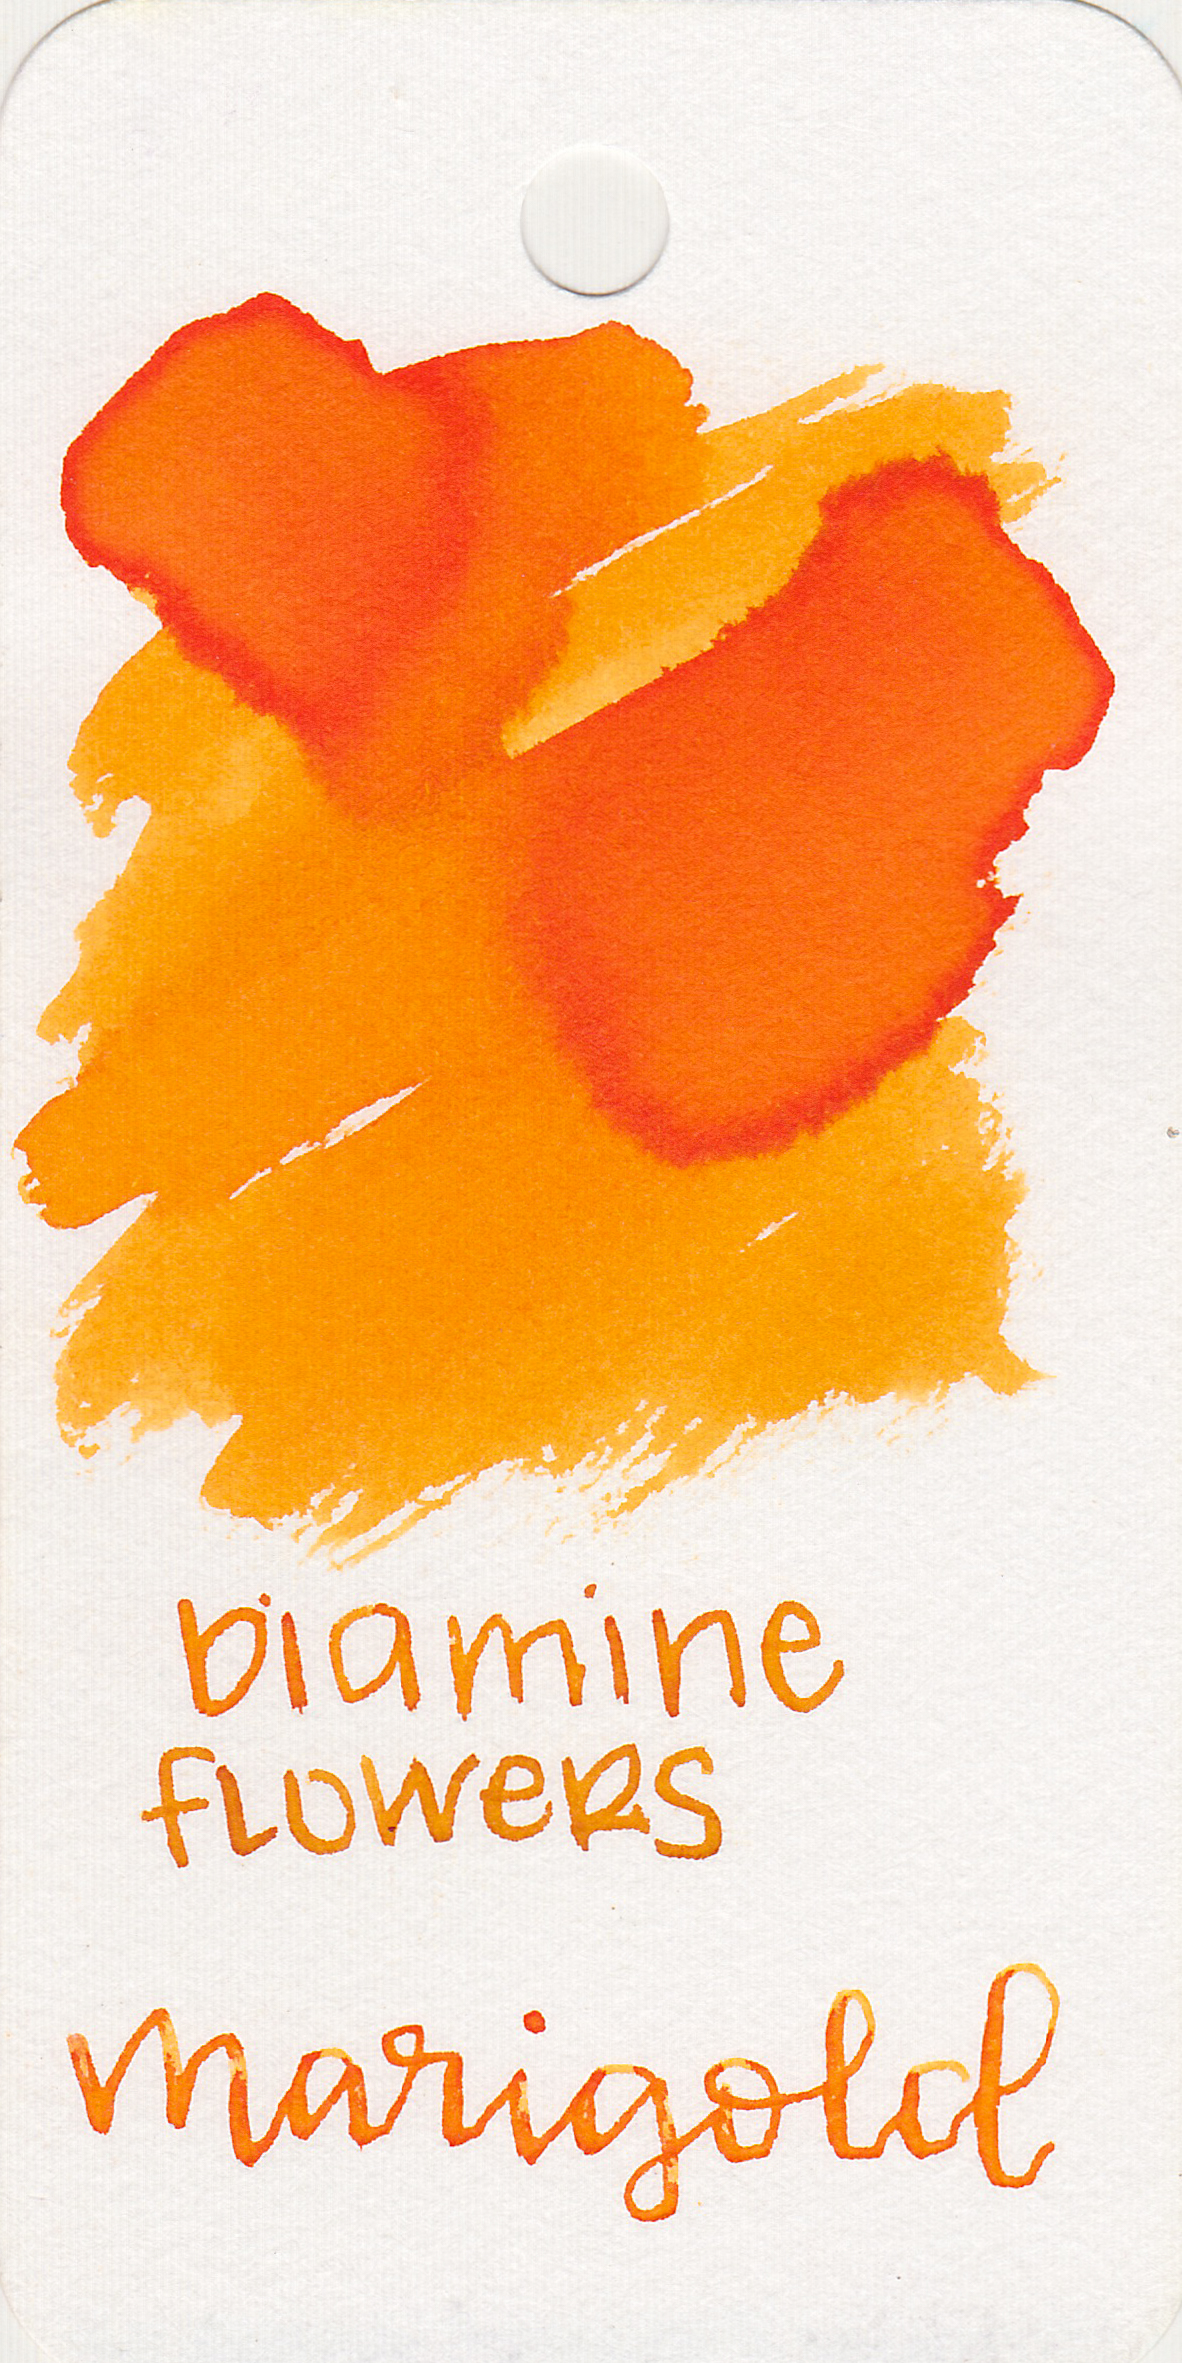 The color: - Marigold is a bright yellow-orange.